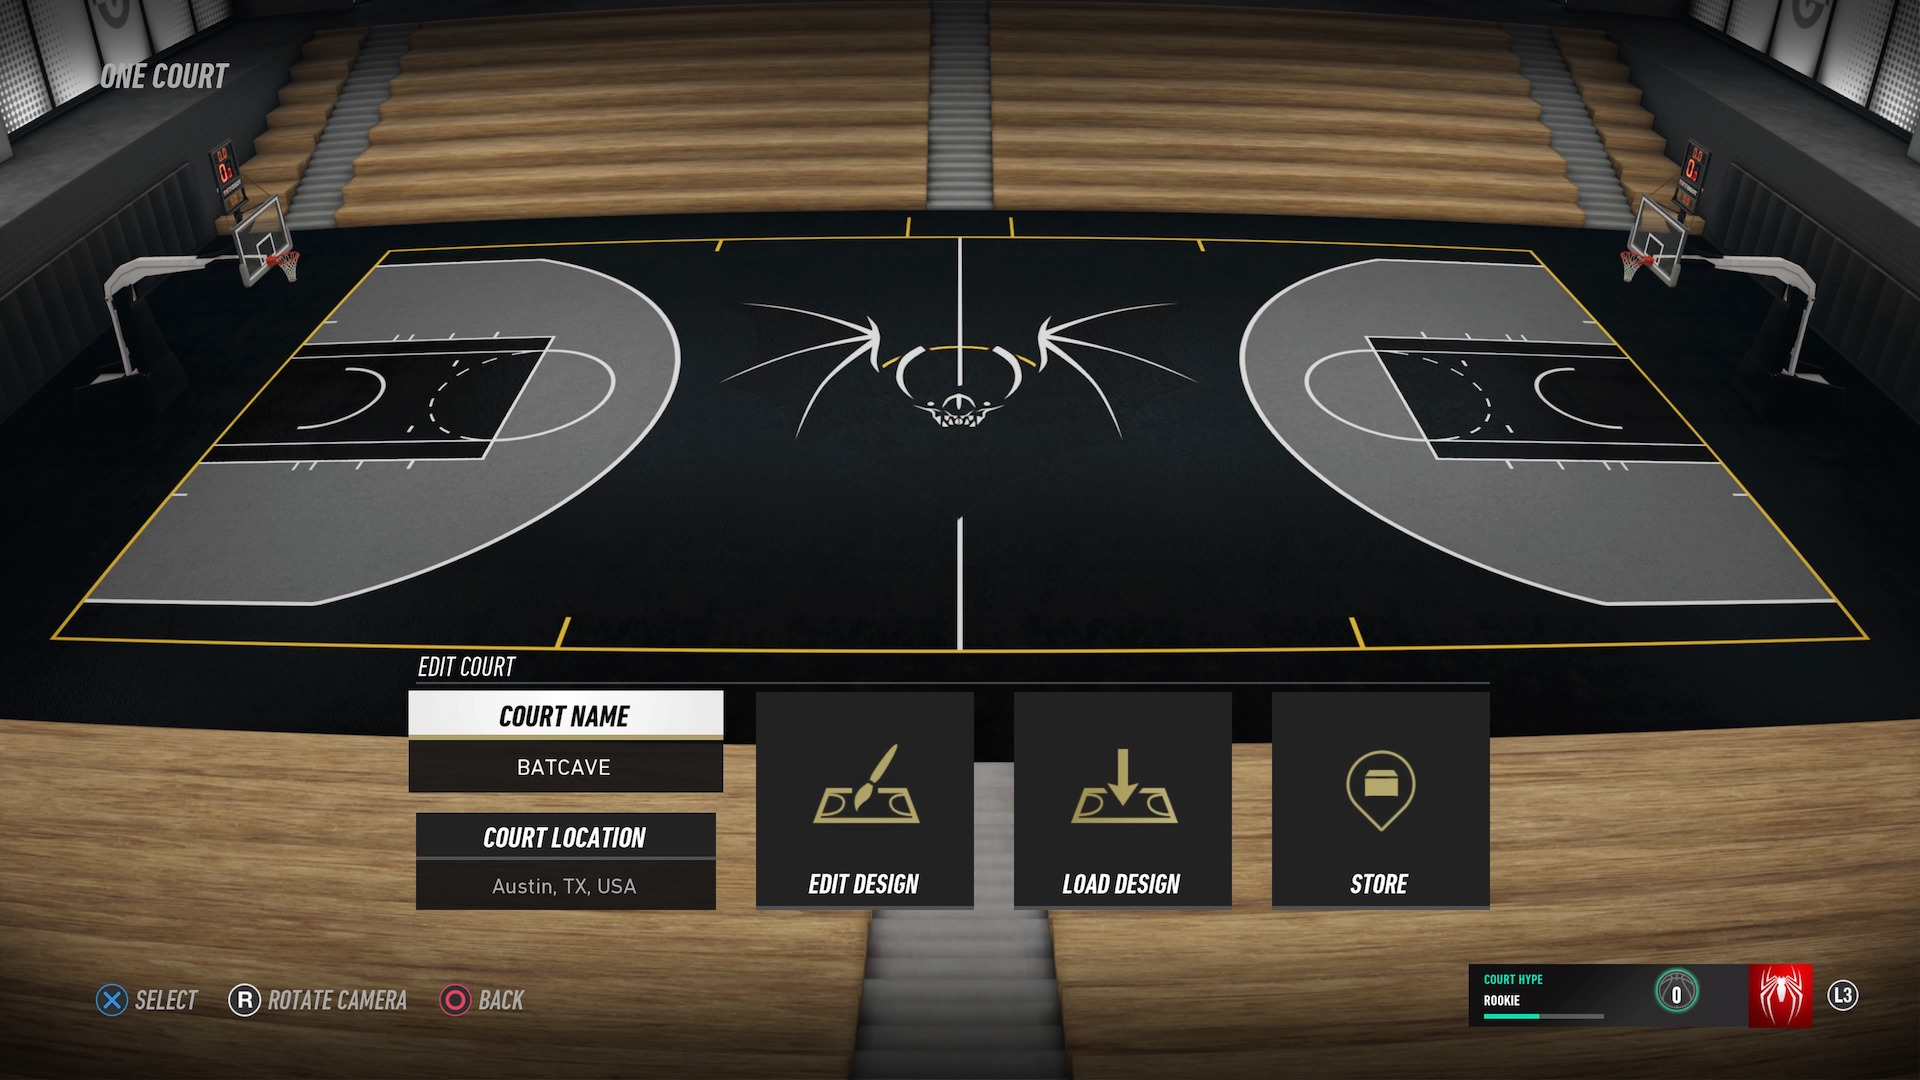 nba_live_19_create_court